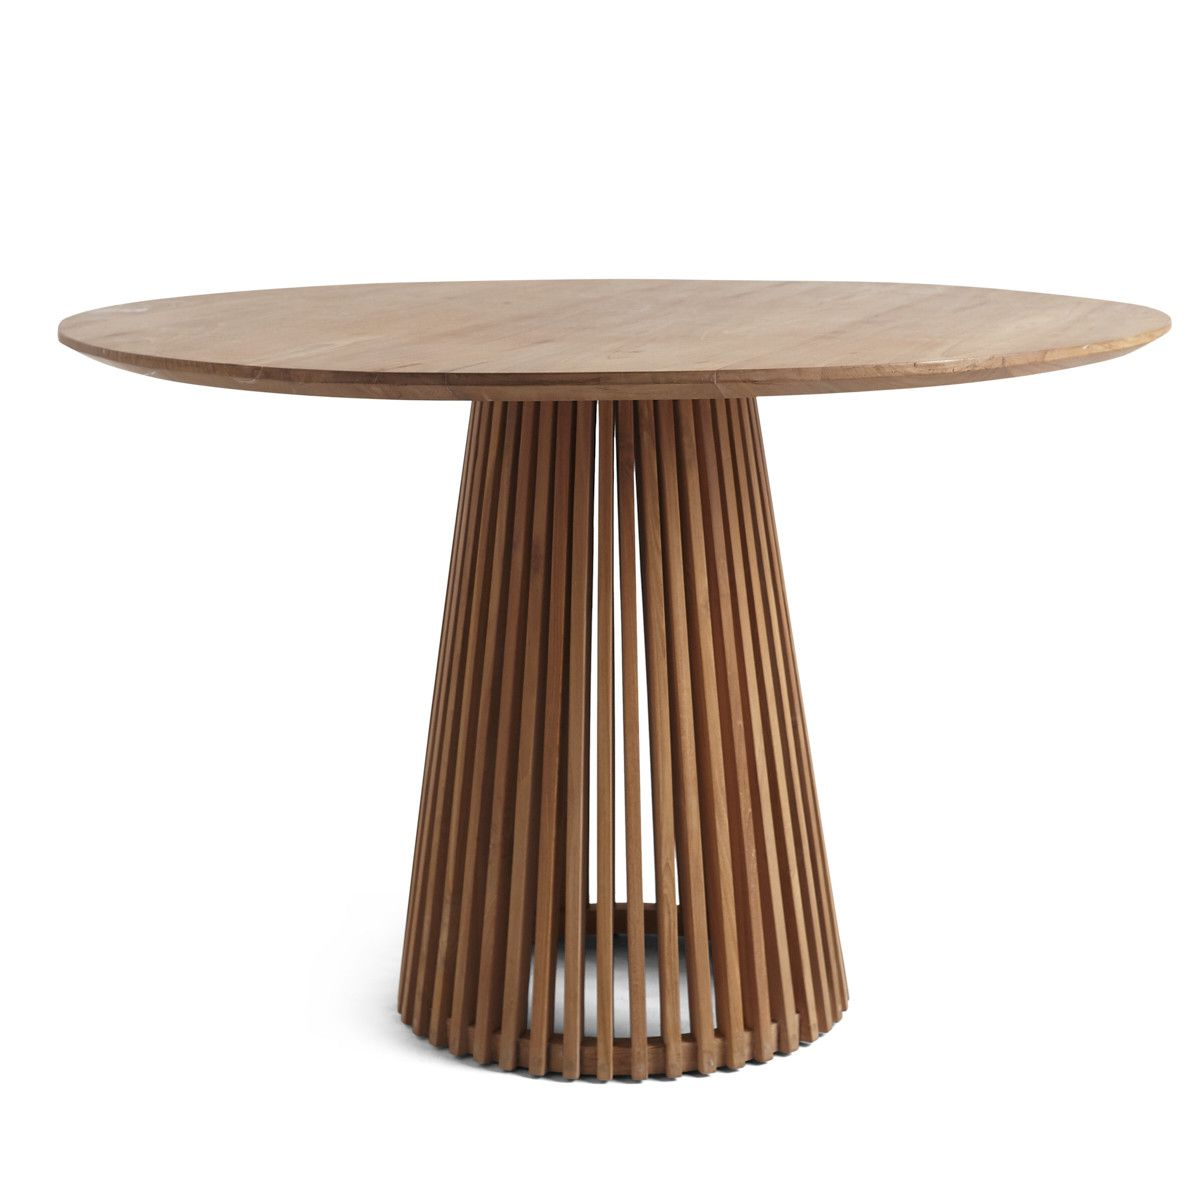 Slatted Teak Circular Dining Table In 2020